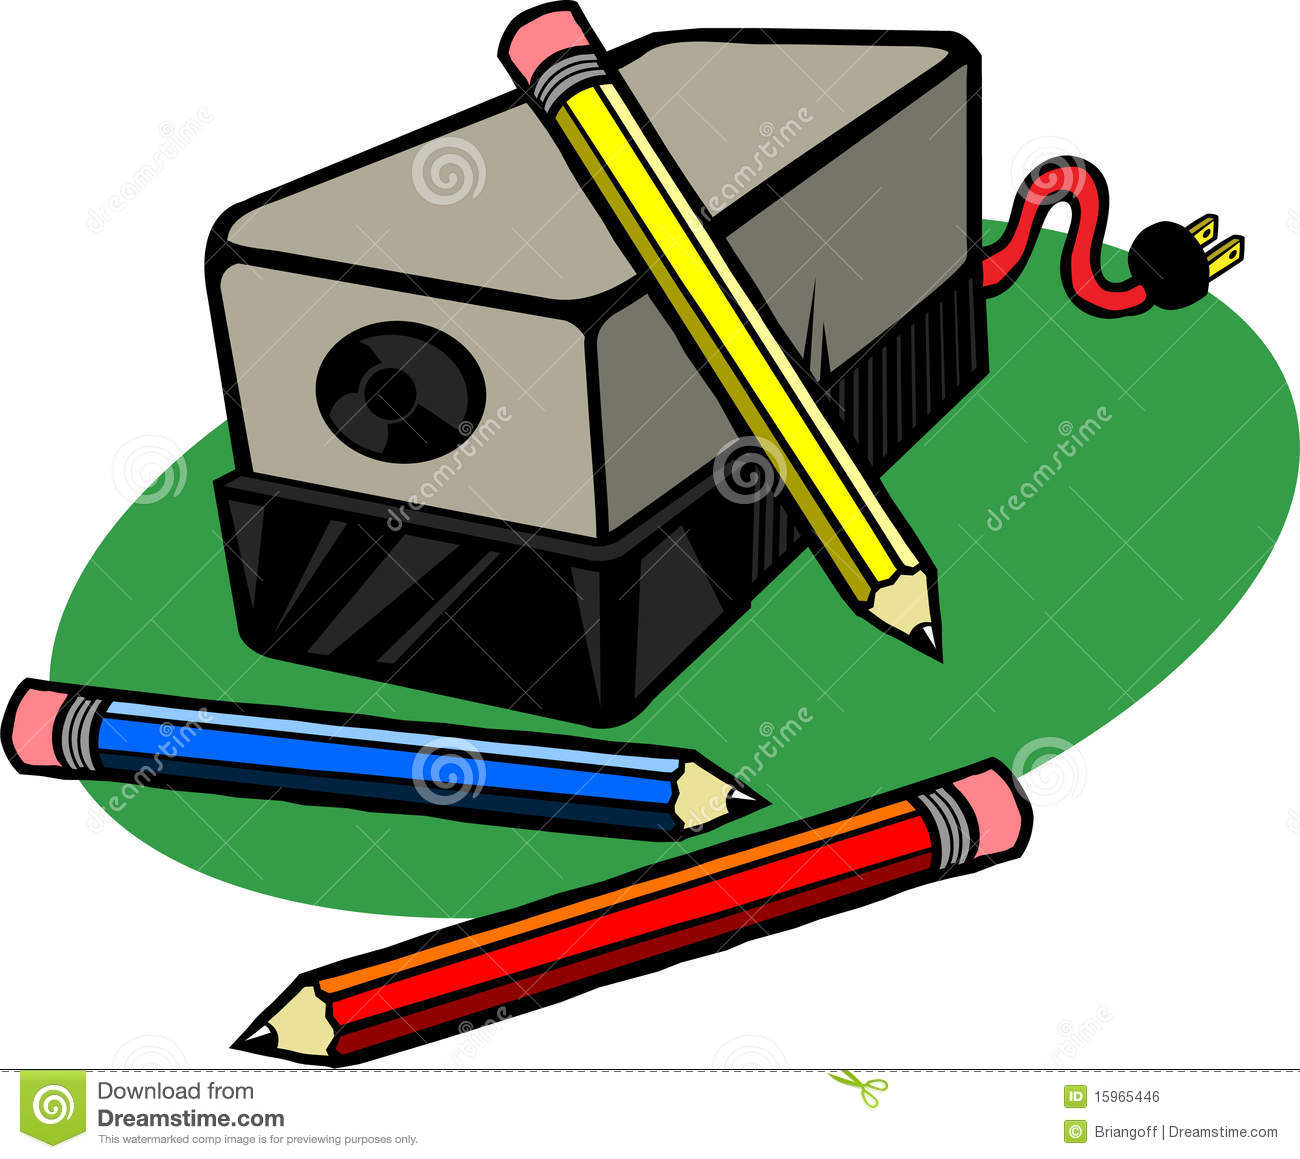 Royalty Free Stock Image Electric Pencil Sharpener Image15965446 on electric eraser